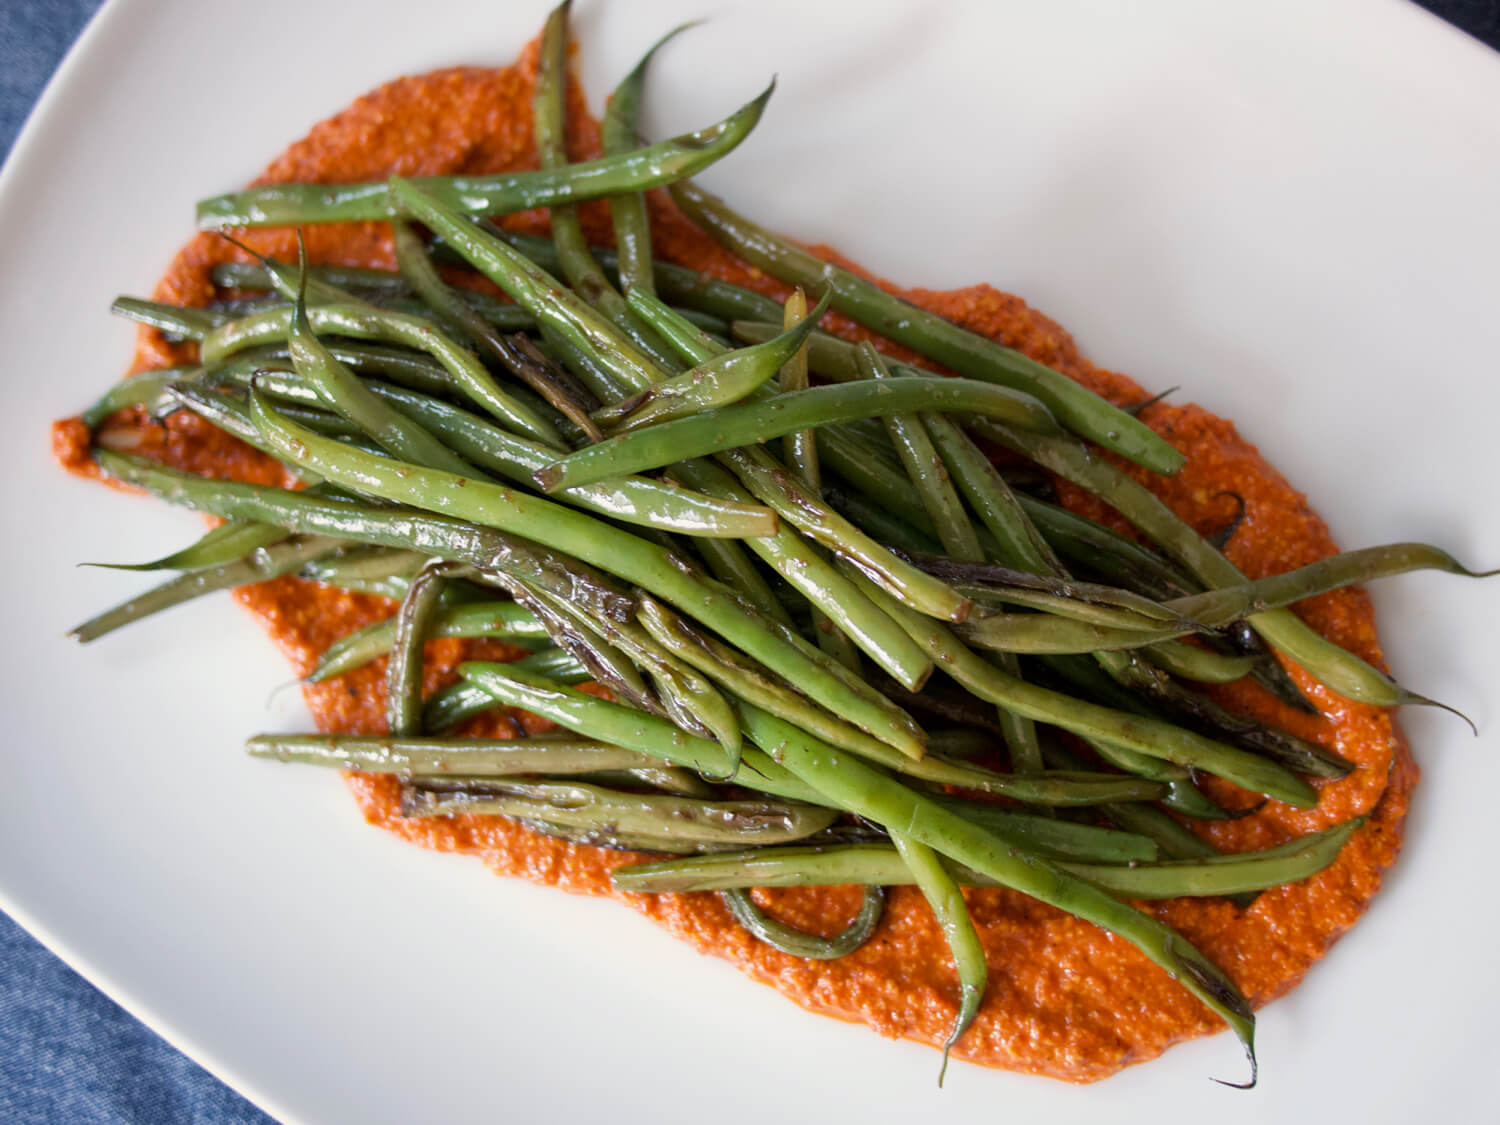 Garlicky Green Beans with Romesco Sauce